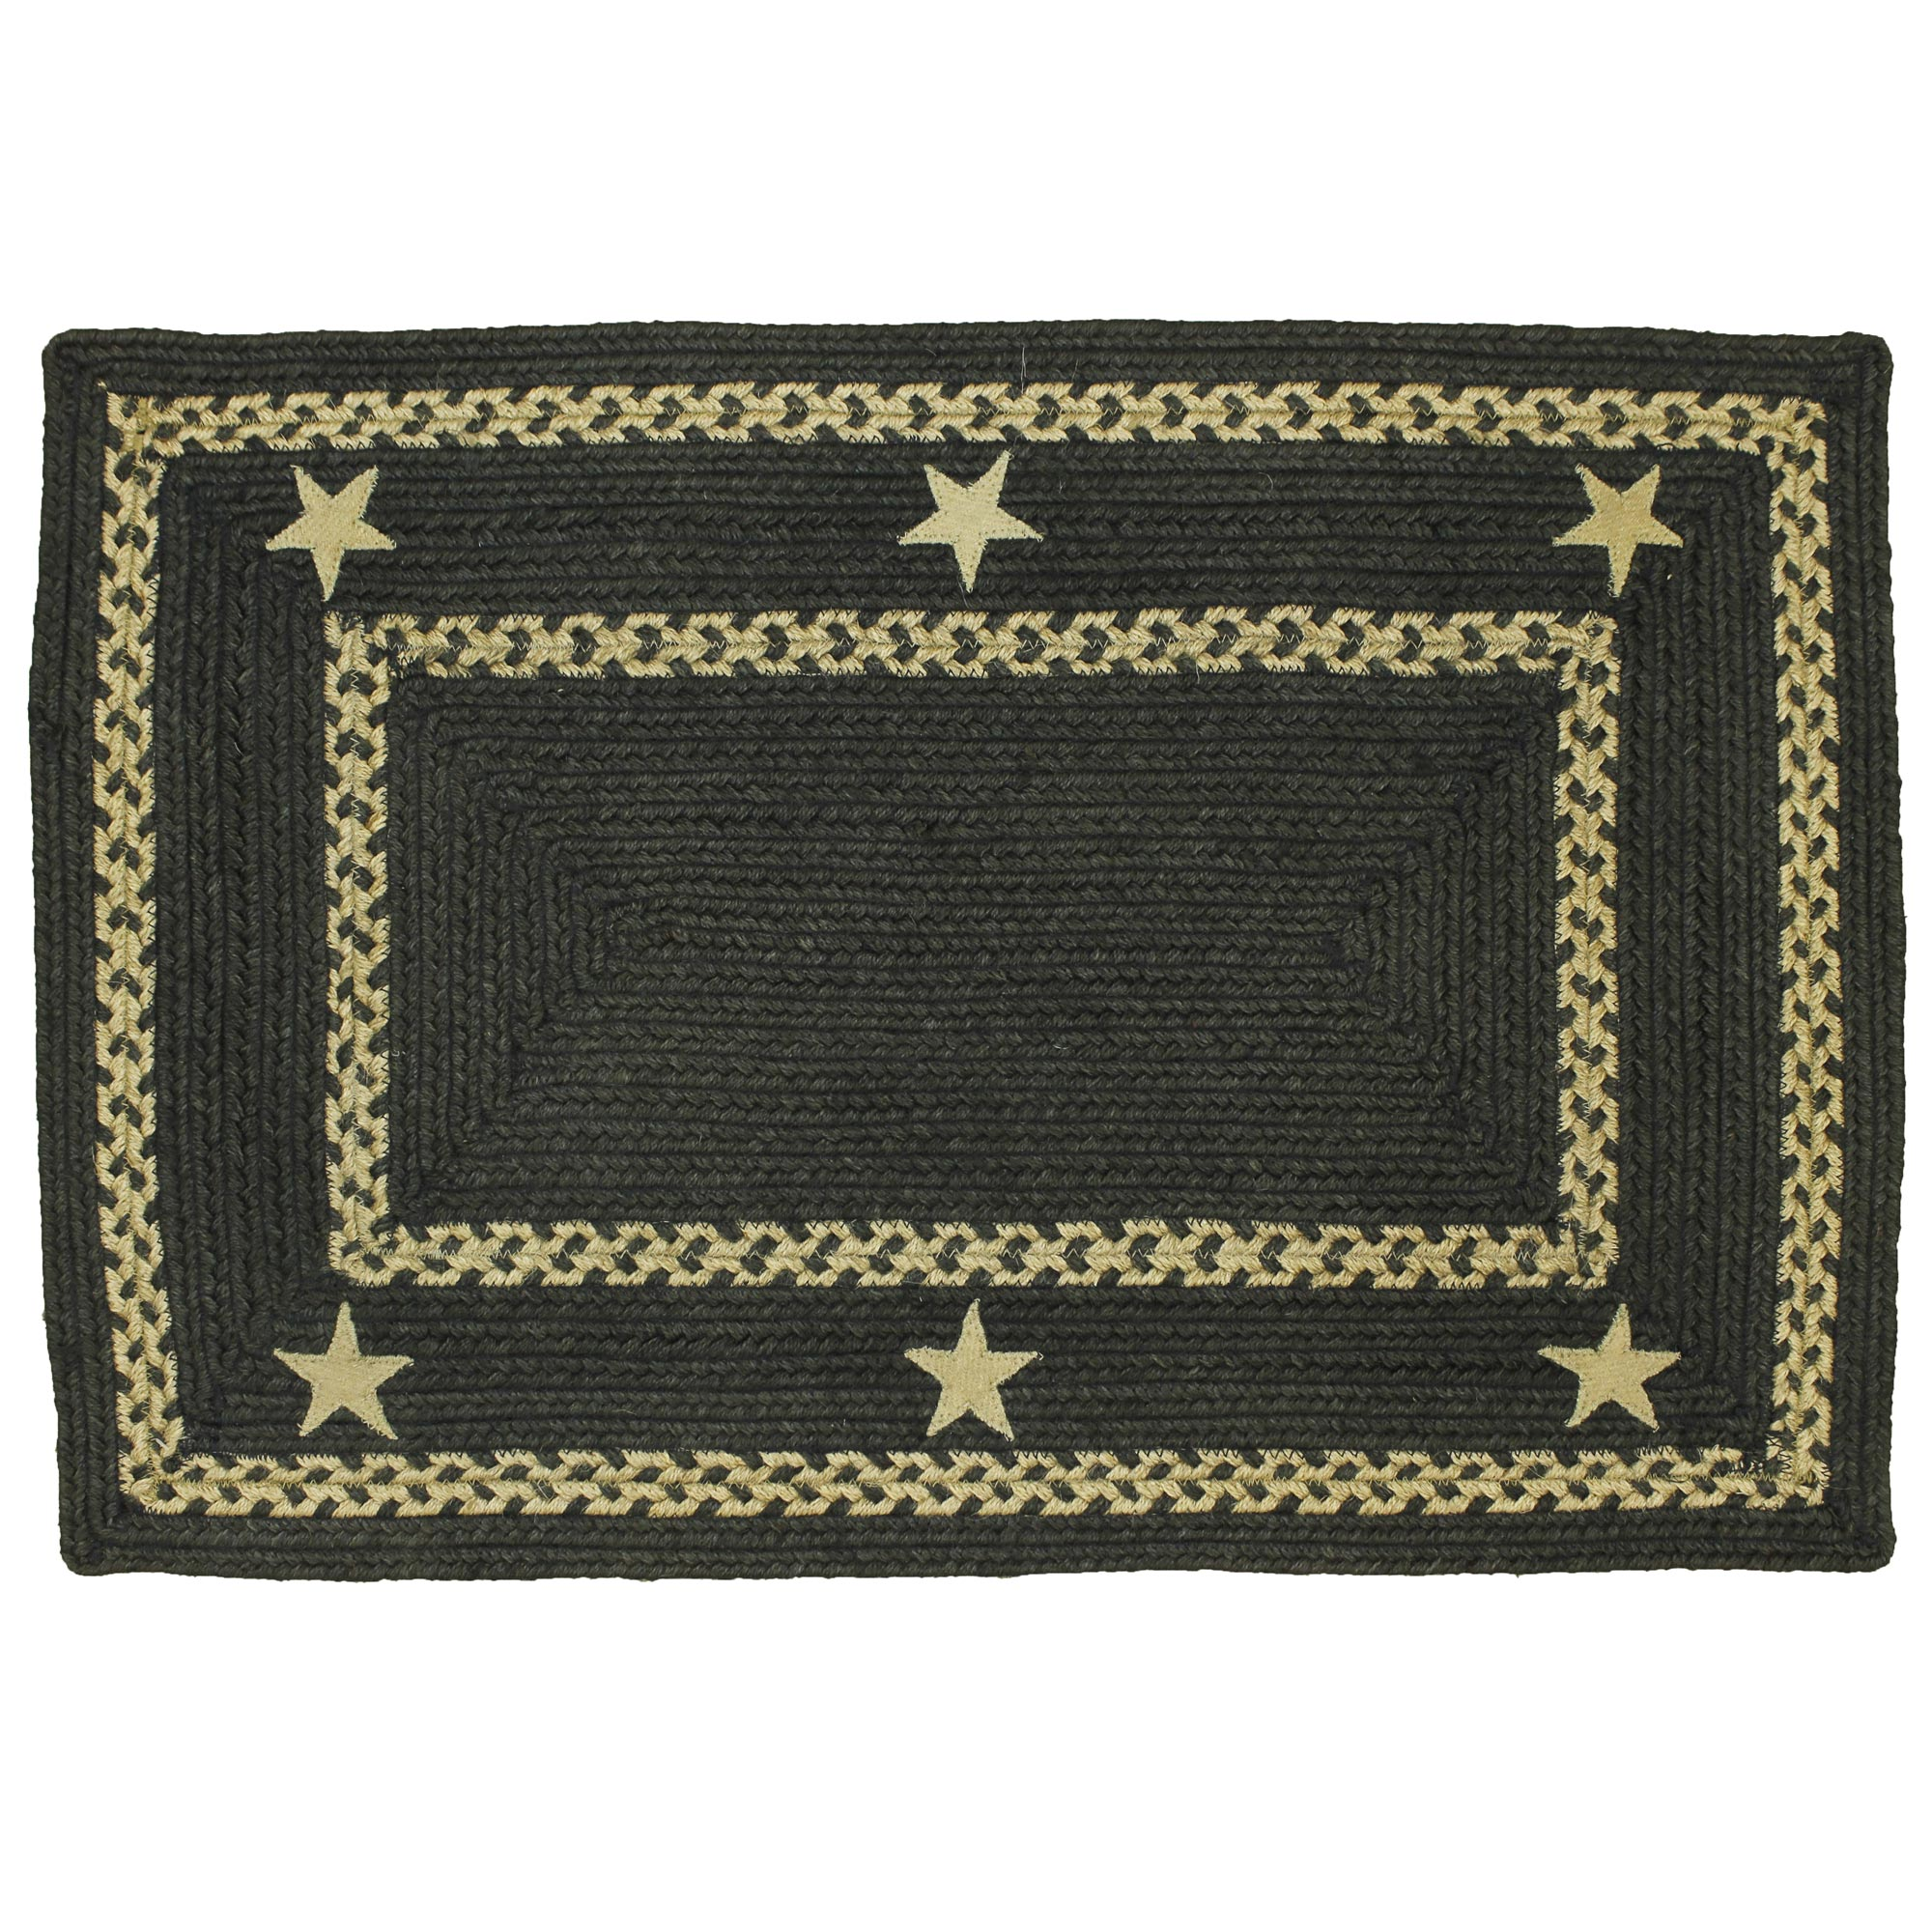 Texas Star Braided Jute Area Rugs